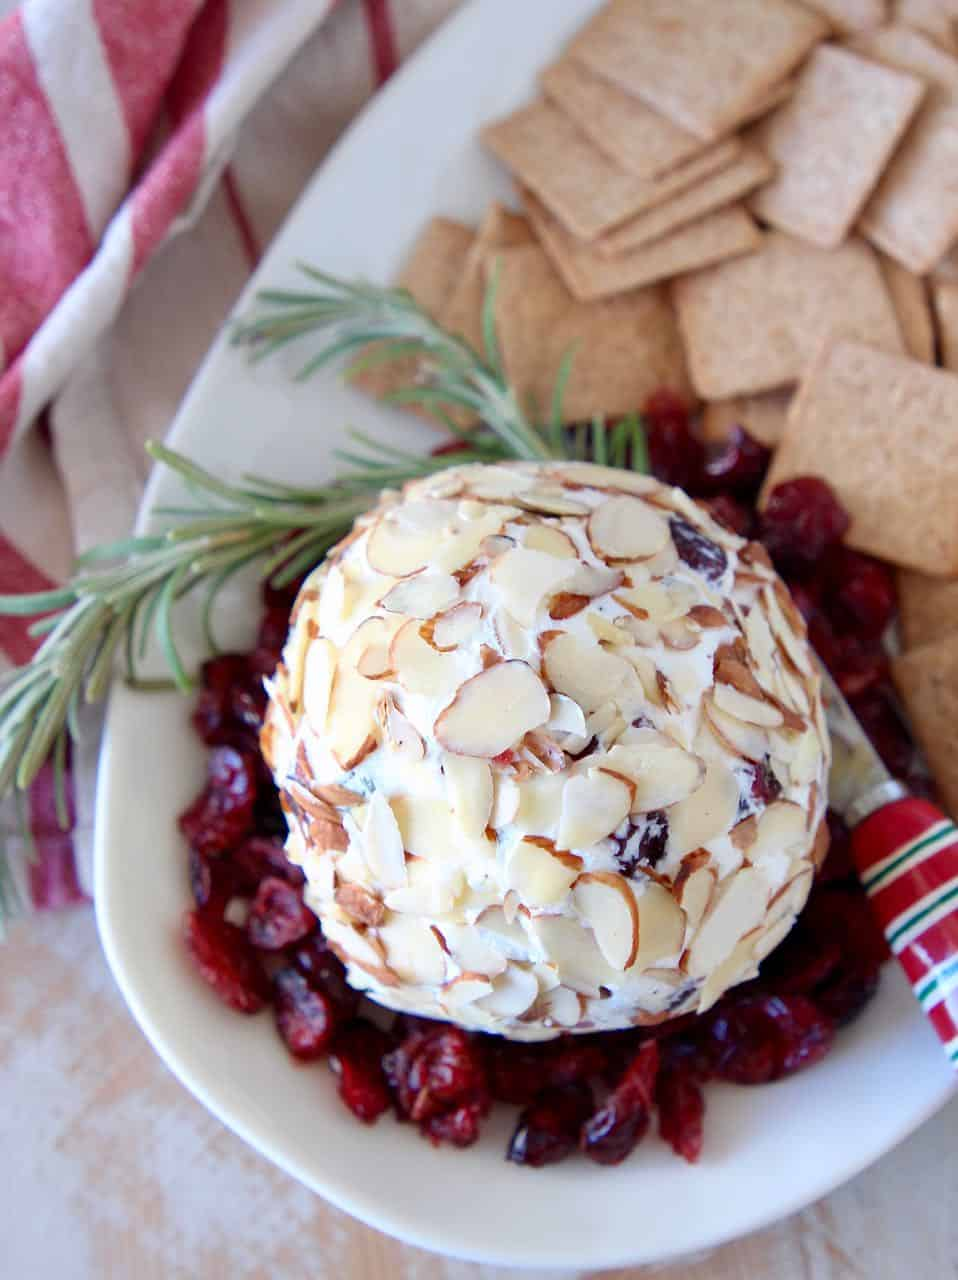 Goat cheese ball on plate with dried cranberries, rosemary sprigs and crackers